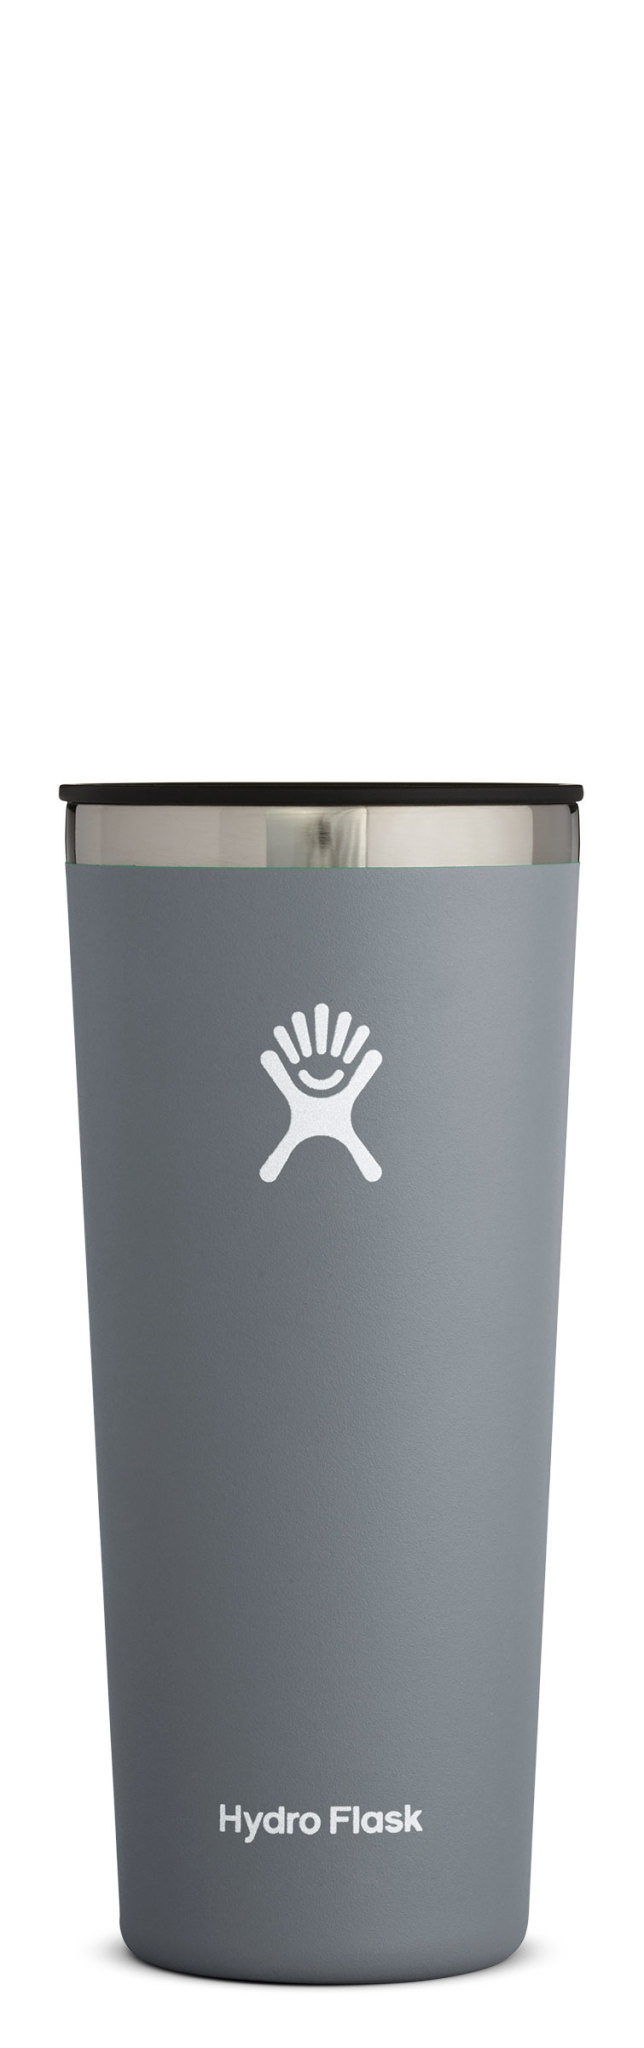 Hydro Flask 22oz Tumbler-6